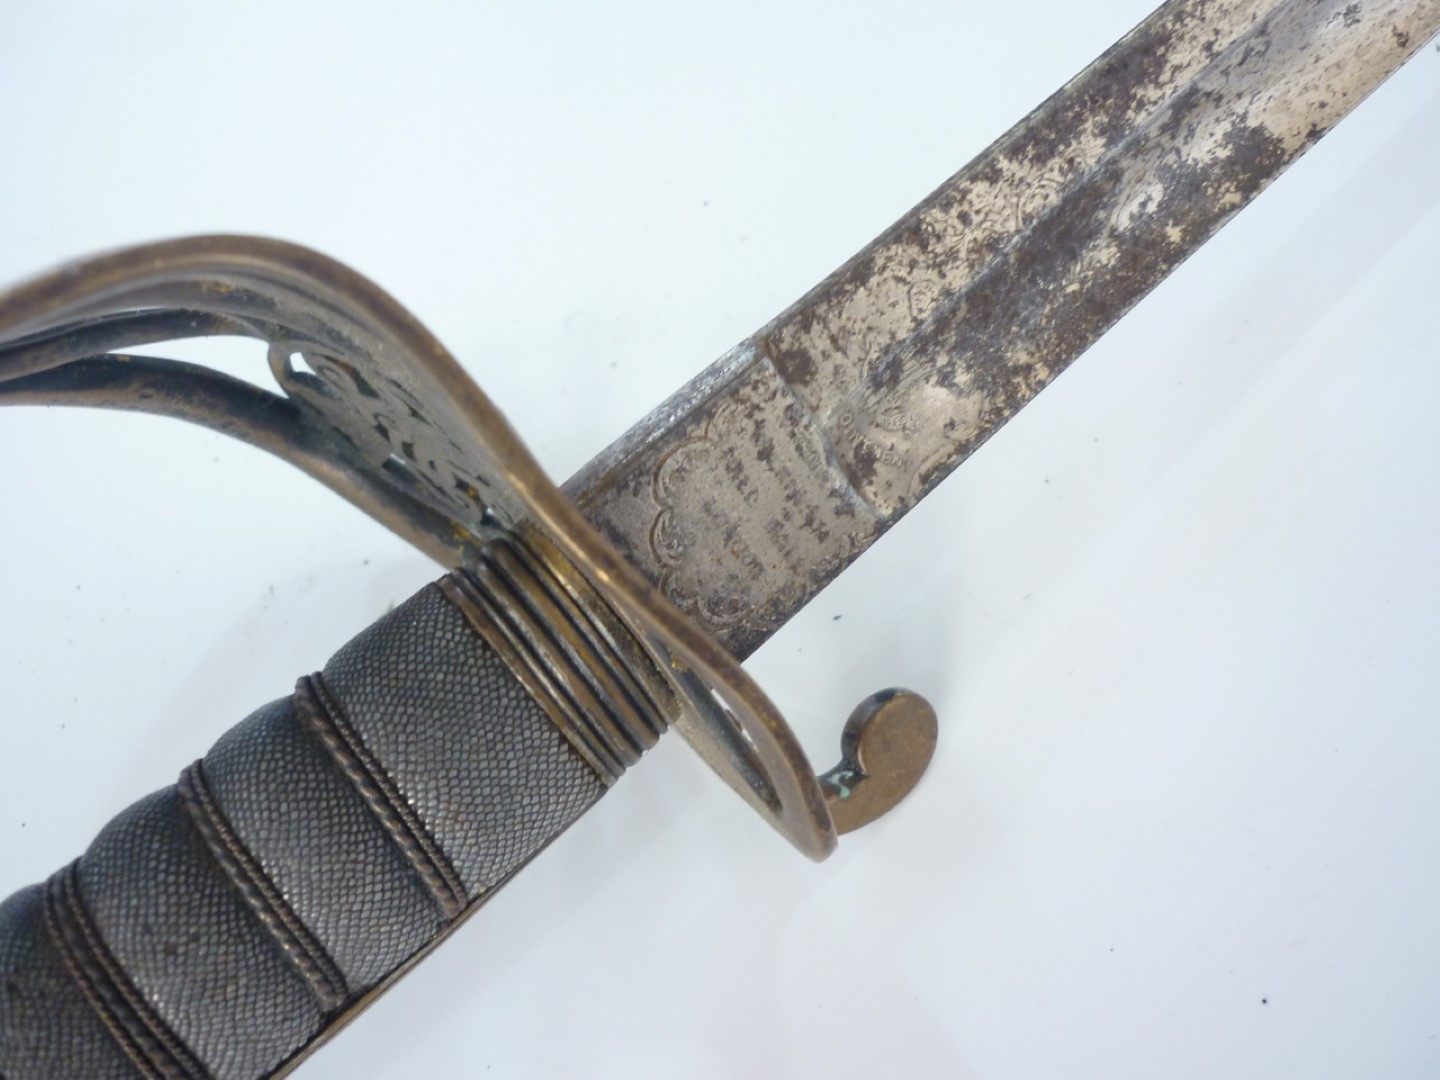 Lot 100 - An 1845 Pattern infantry officer's sword by Henry Wilkinson, Pall Mall